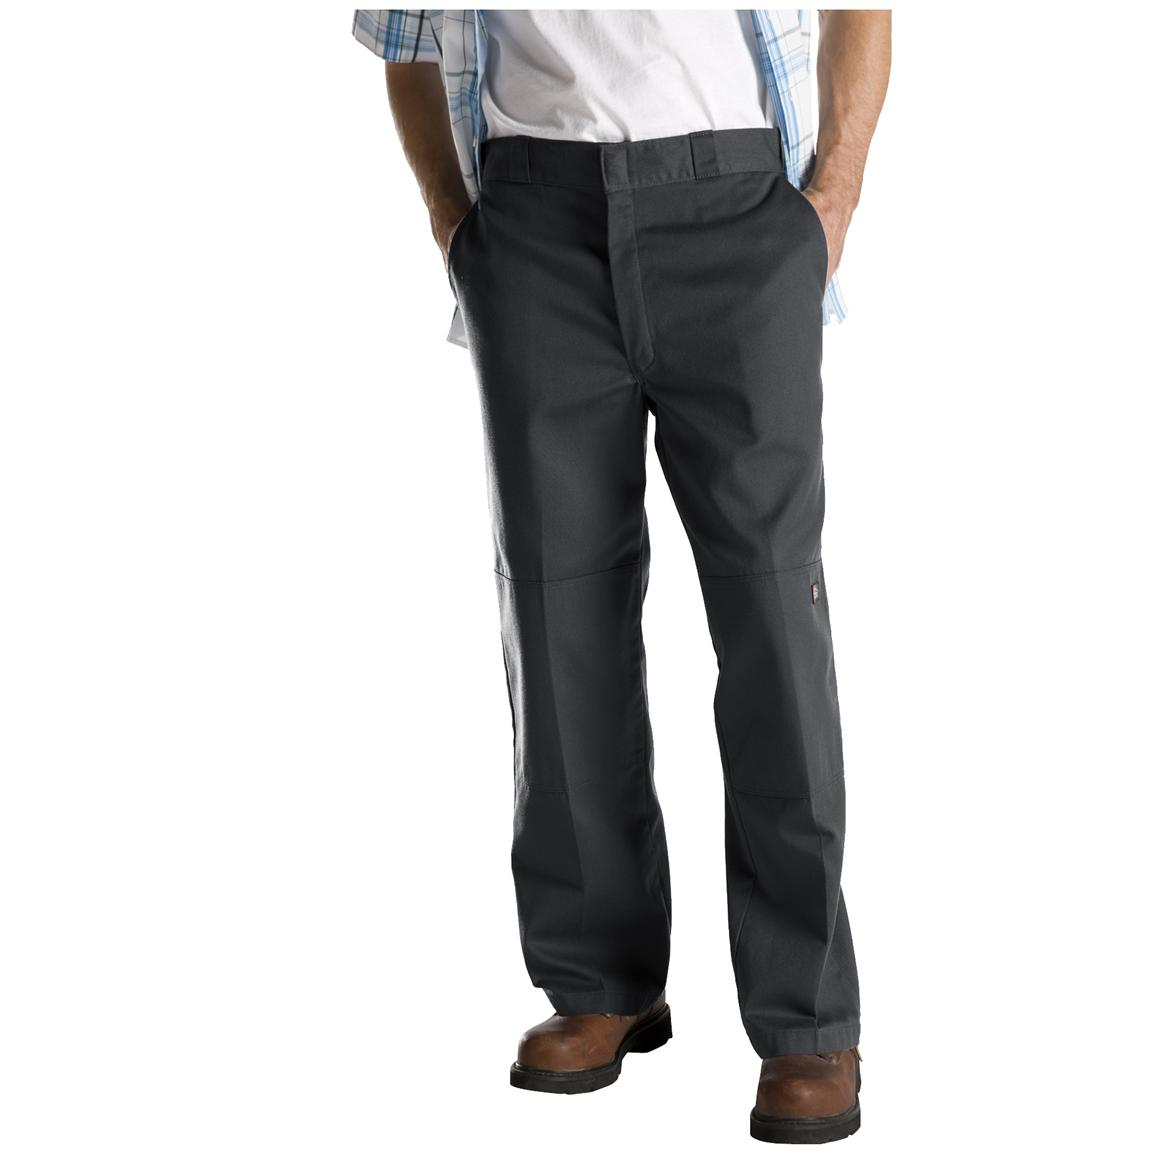 Dickies® Loose Fit Double-Knee Work Pants, Charcoal